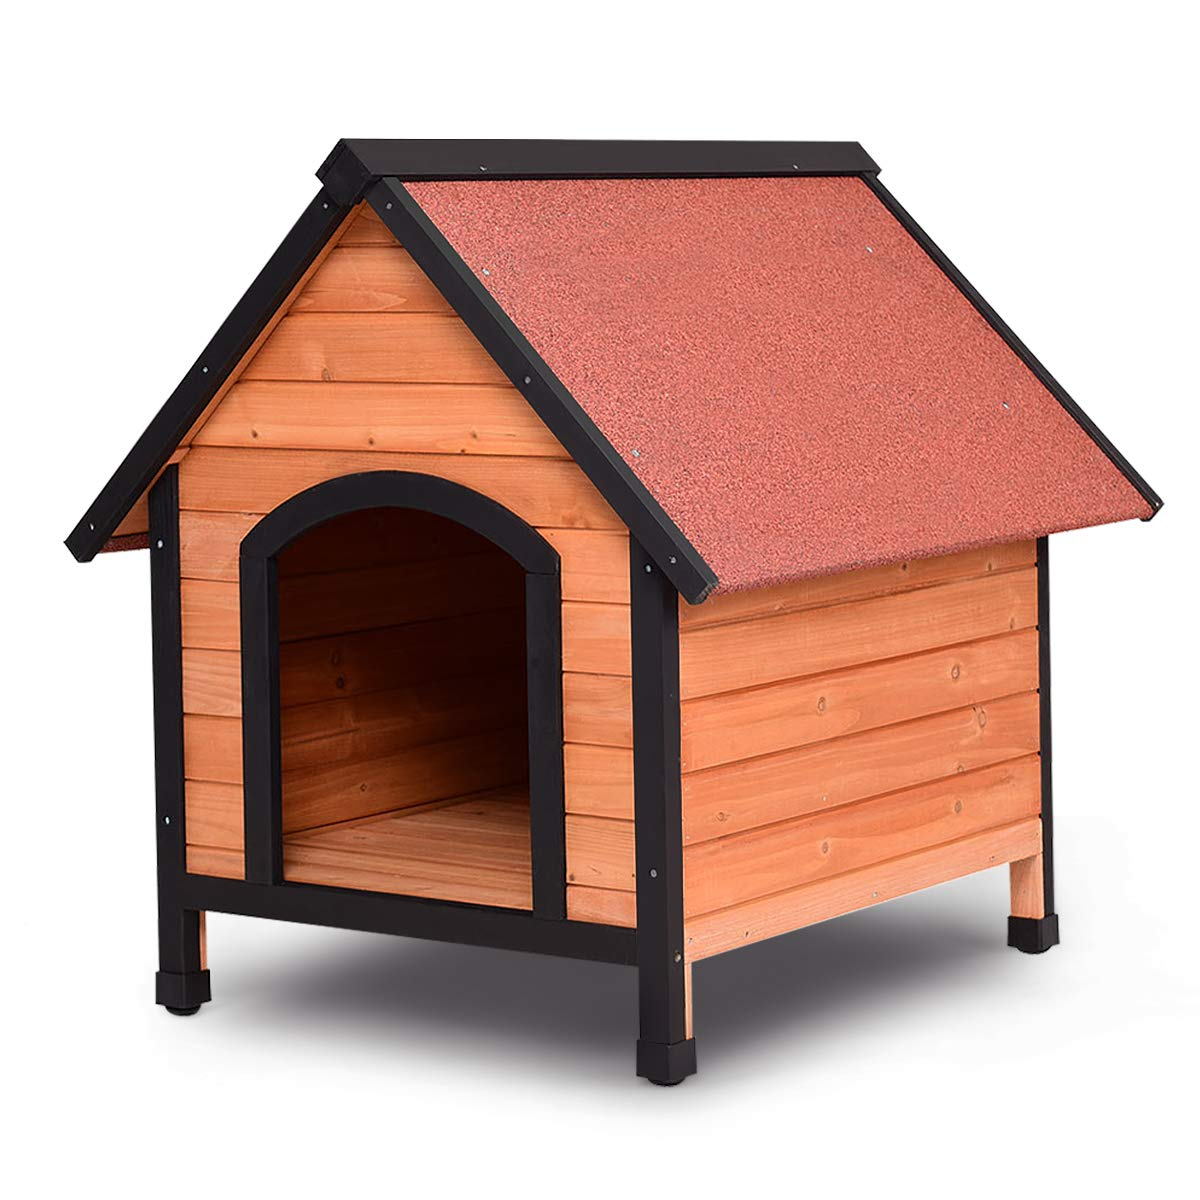 Tangkula Dog House, Wooden Pet Kennel, Outdoor Weather Waterproof Pet House, Natural Wooden Dog House Home with Reddish Brown Roof, Pet Dog House (Medium)